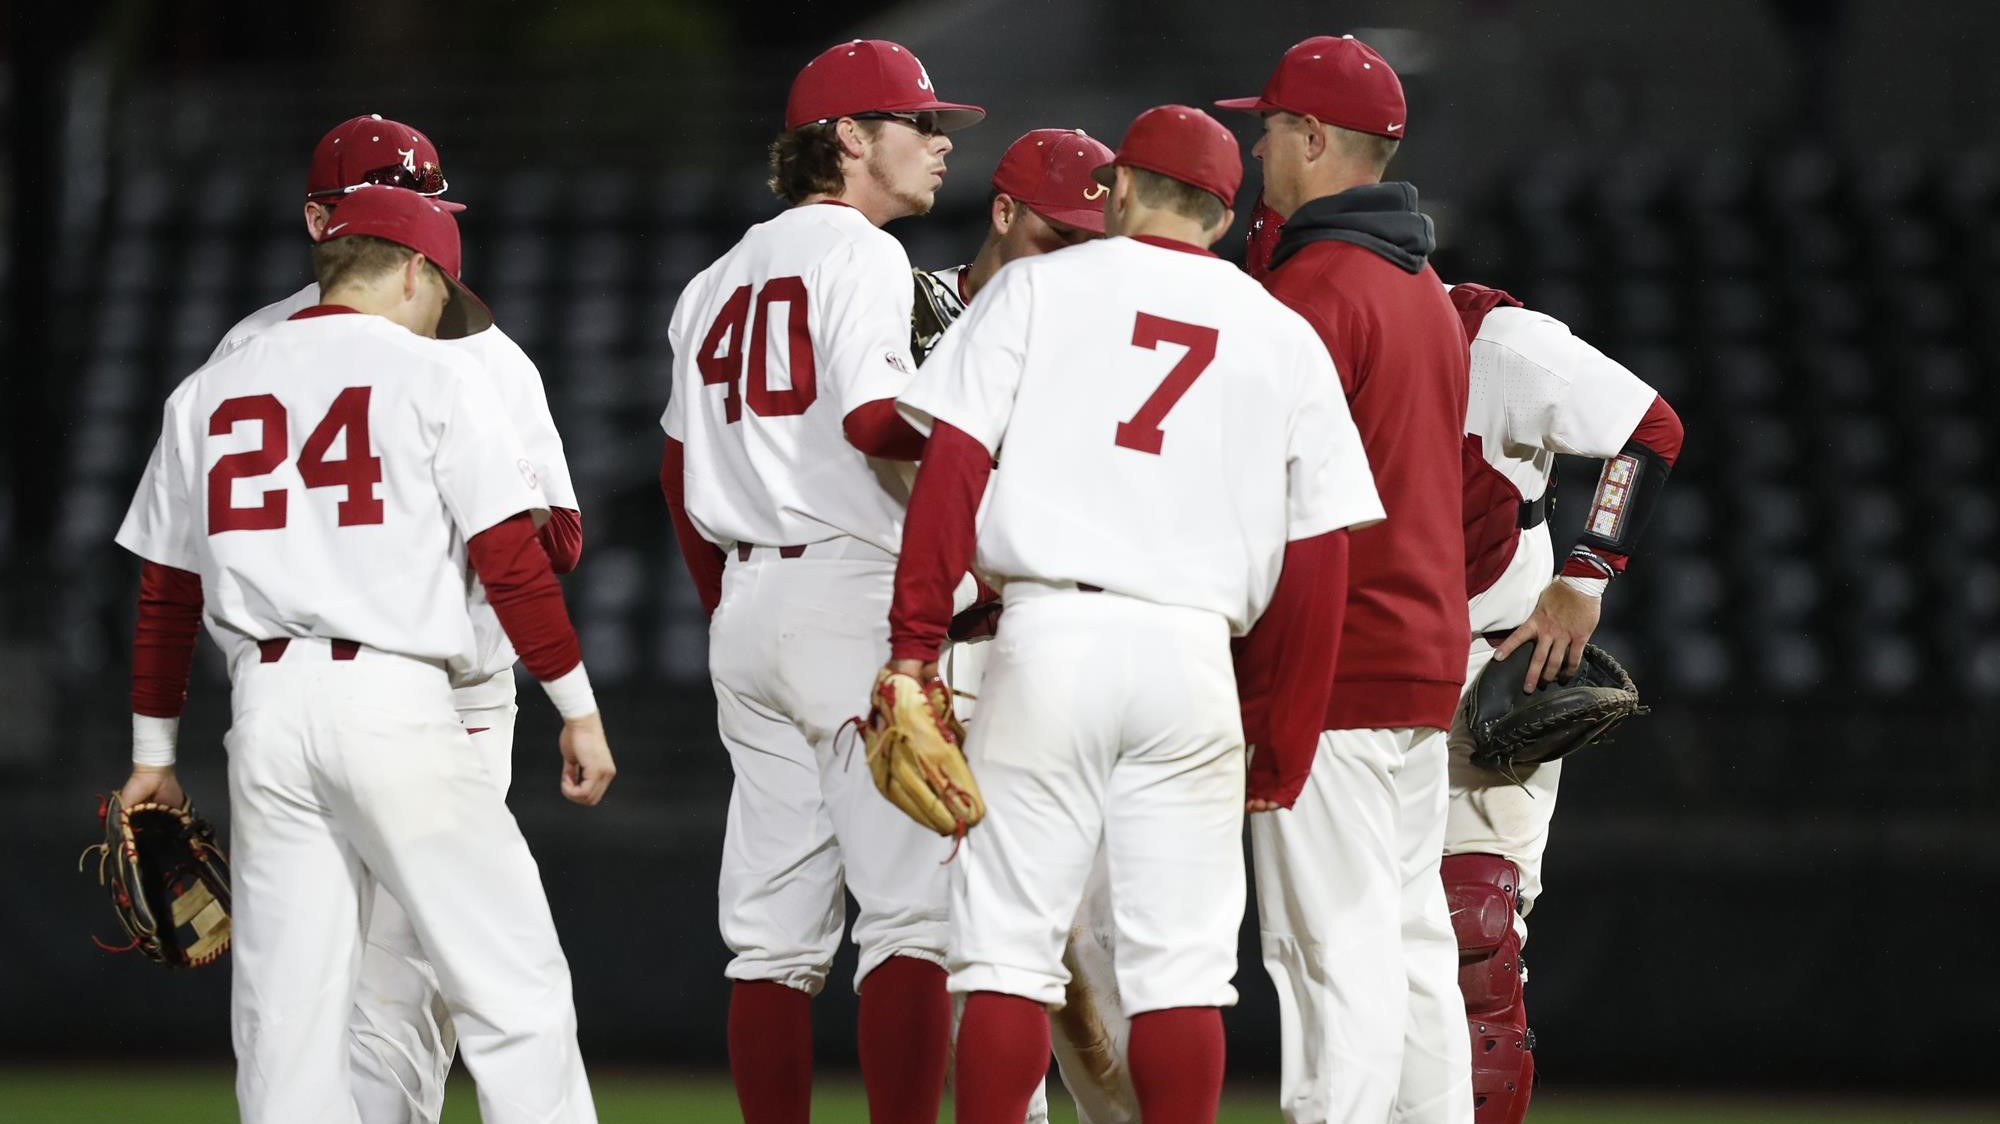 Back-and-Forth Contest Goes Against Baseball in 7-4 Loss to No. 5 Vanderbilt